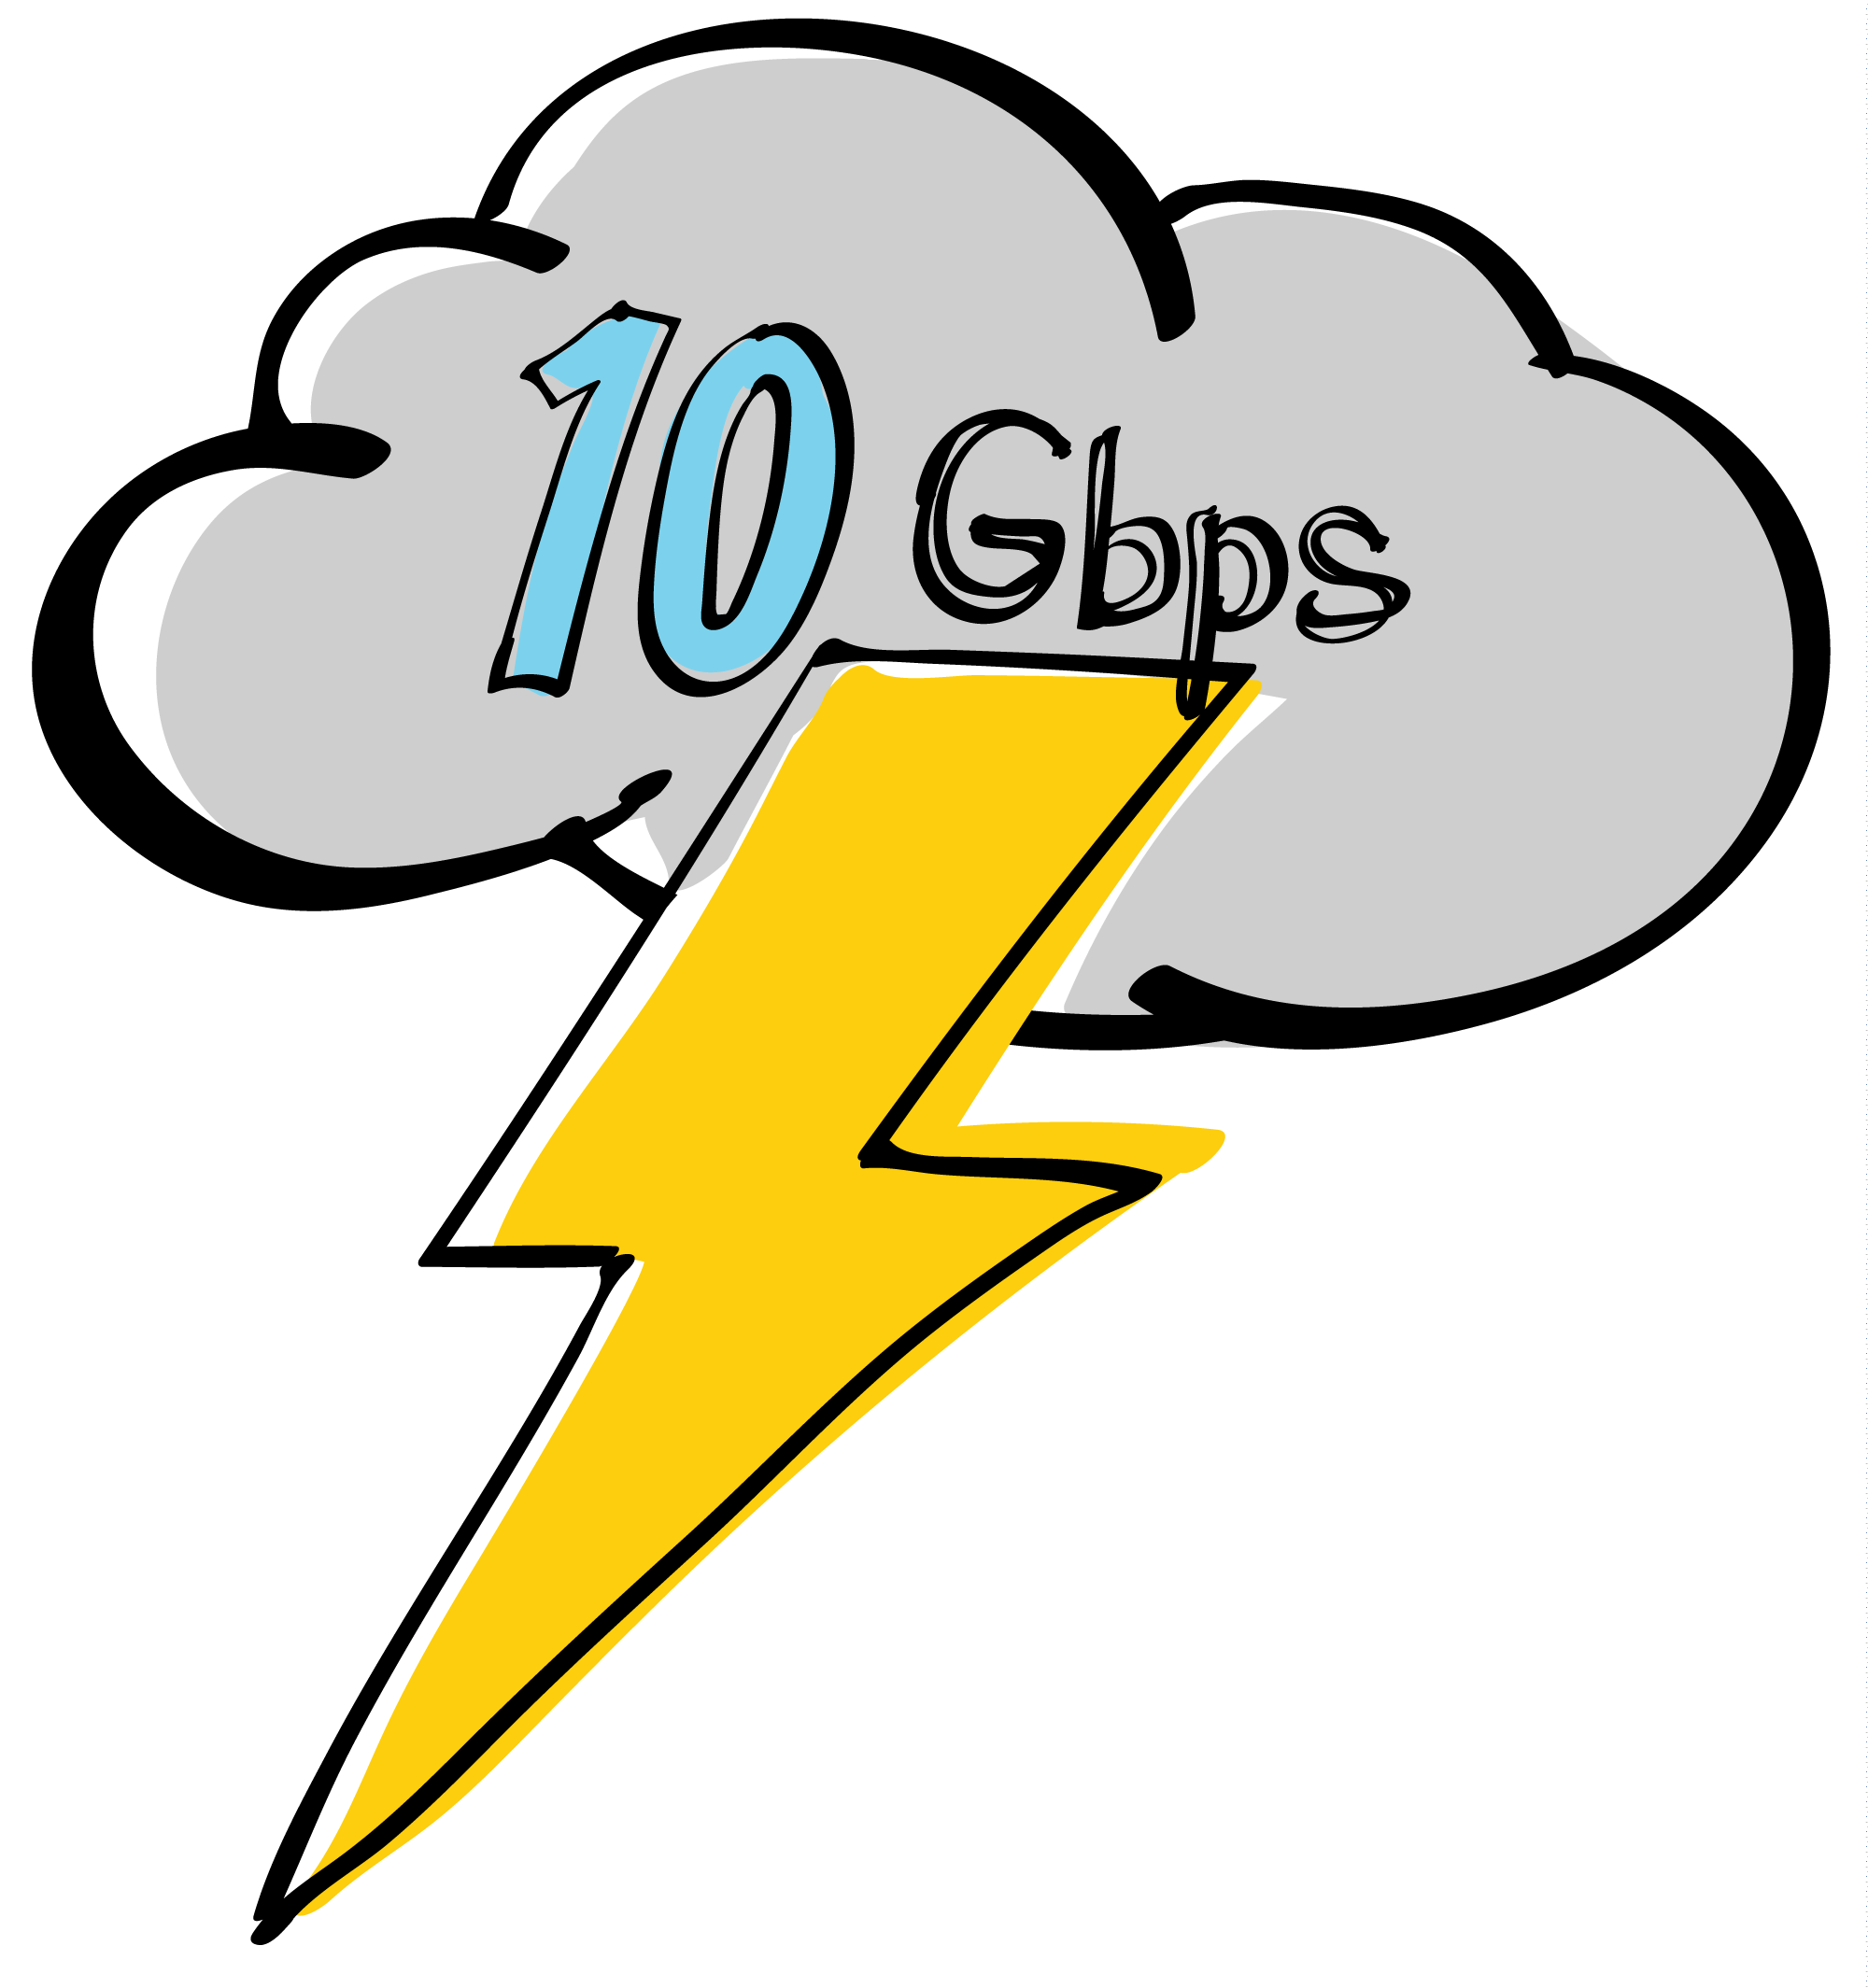 BT 10Gbps Leased Line Circuit